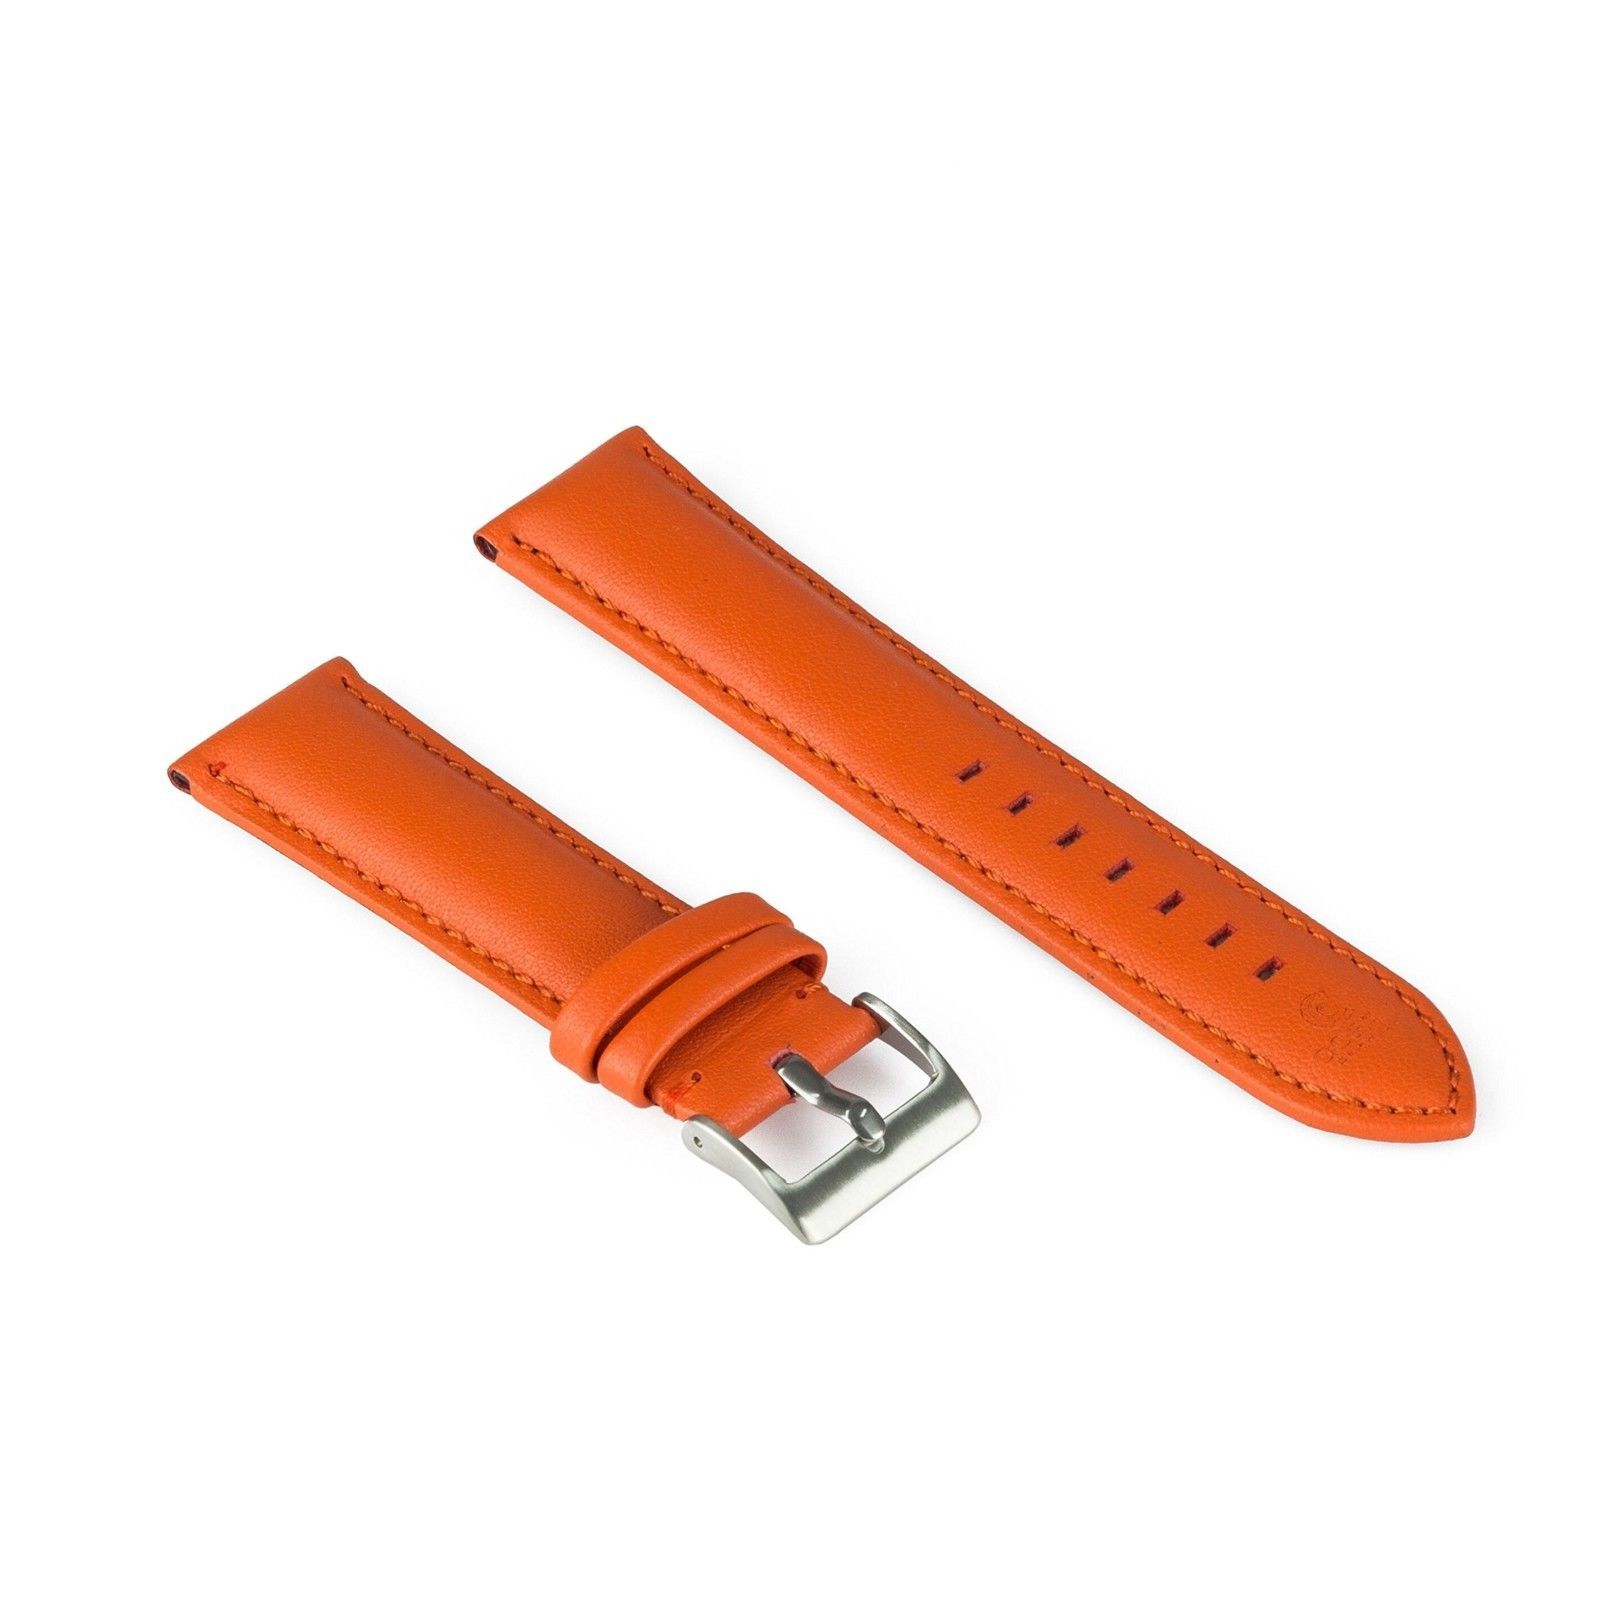 Hand Made Watch Leather Band Strap Orange - Padded and Hand Stitched Strap - 22m - $73.68